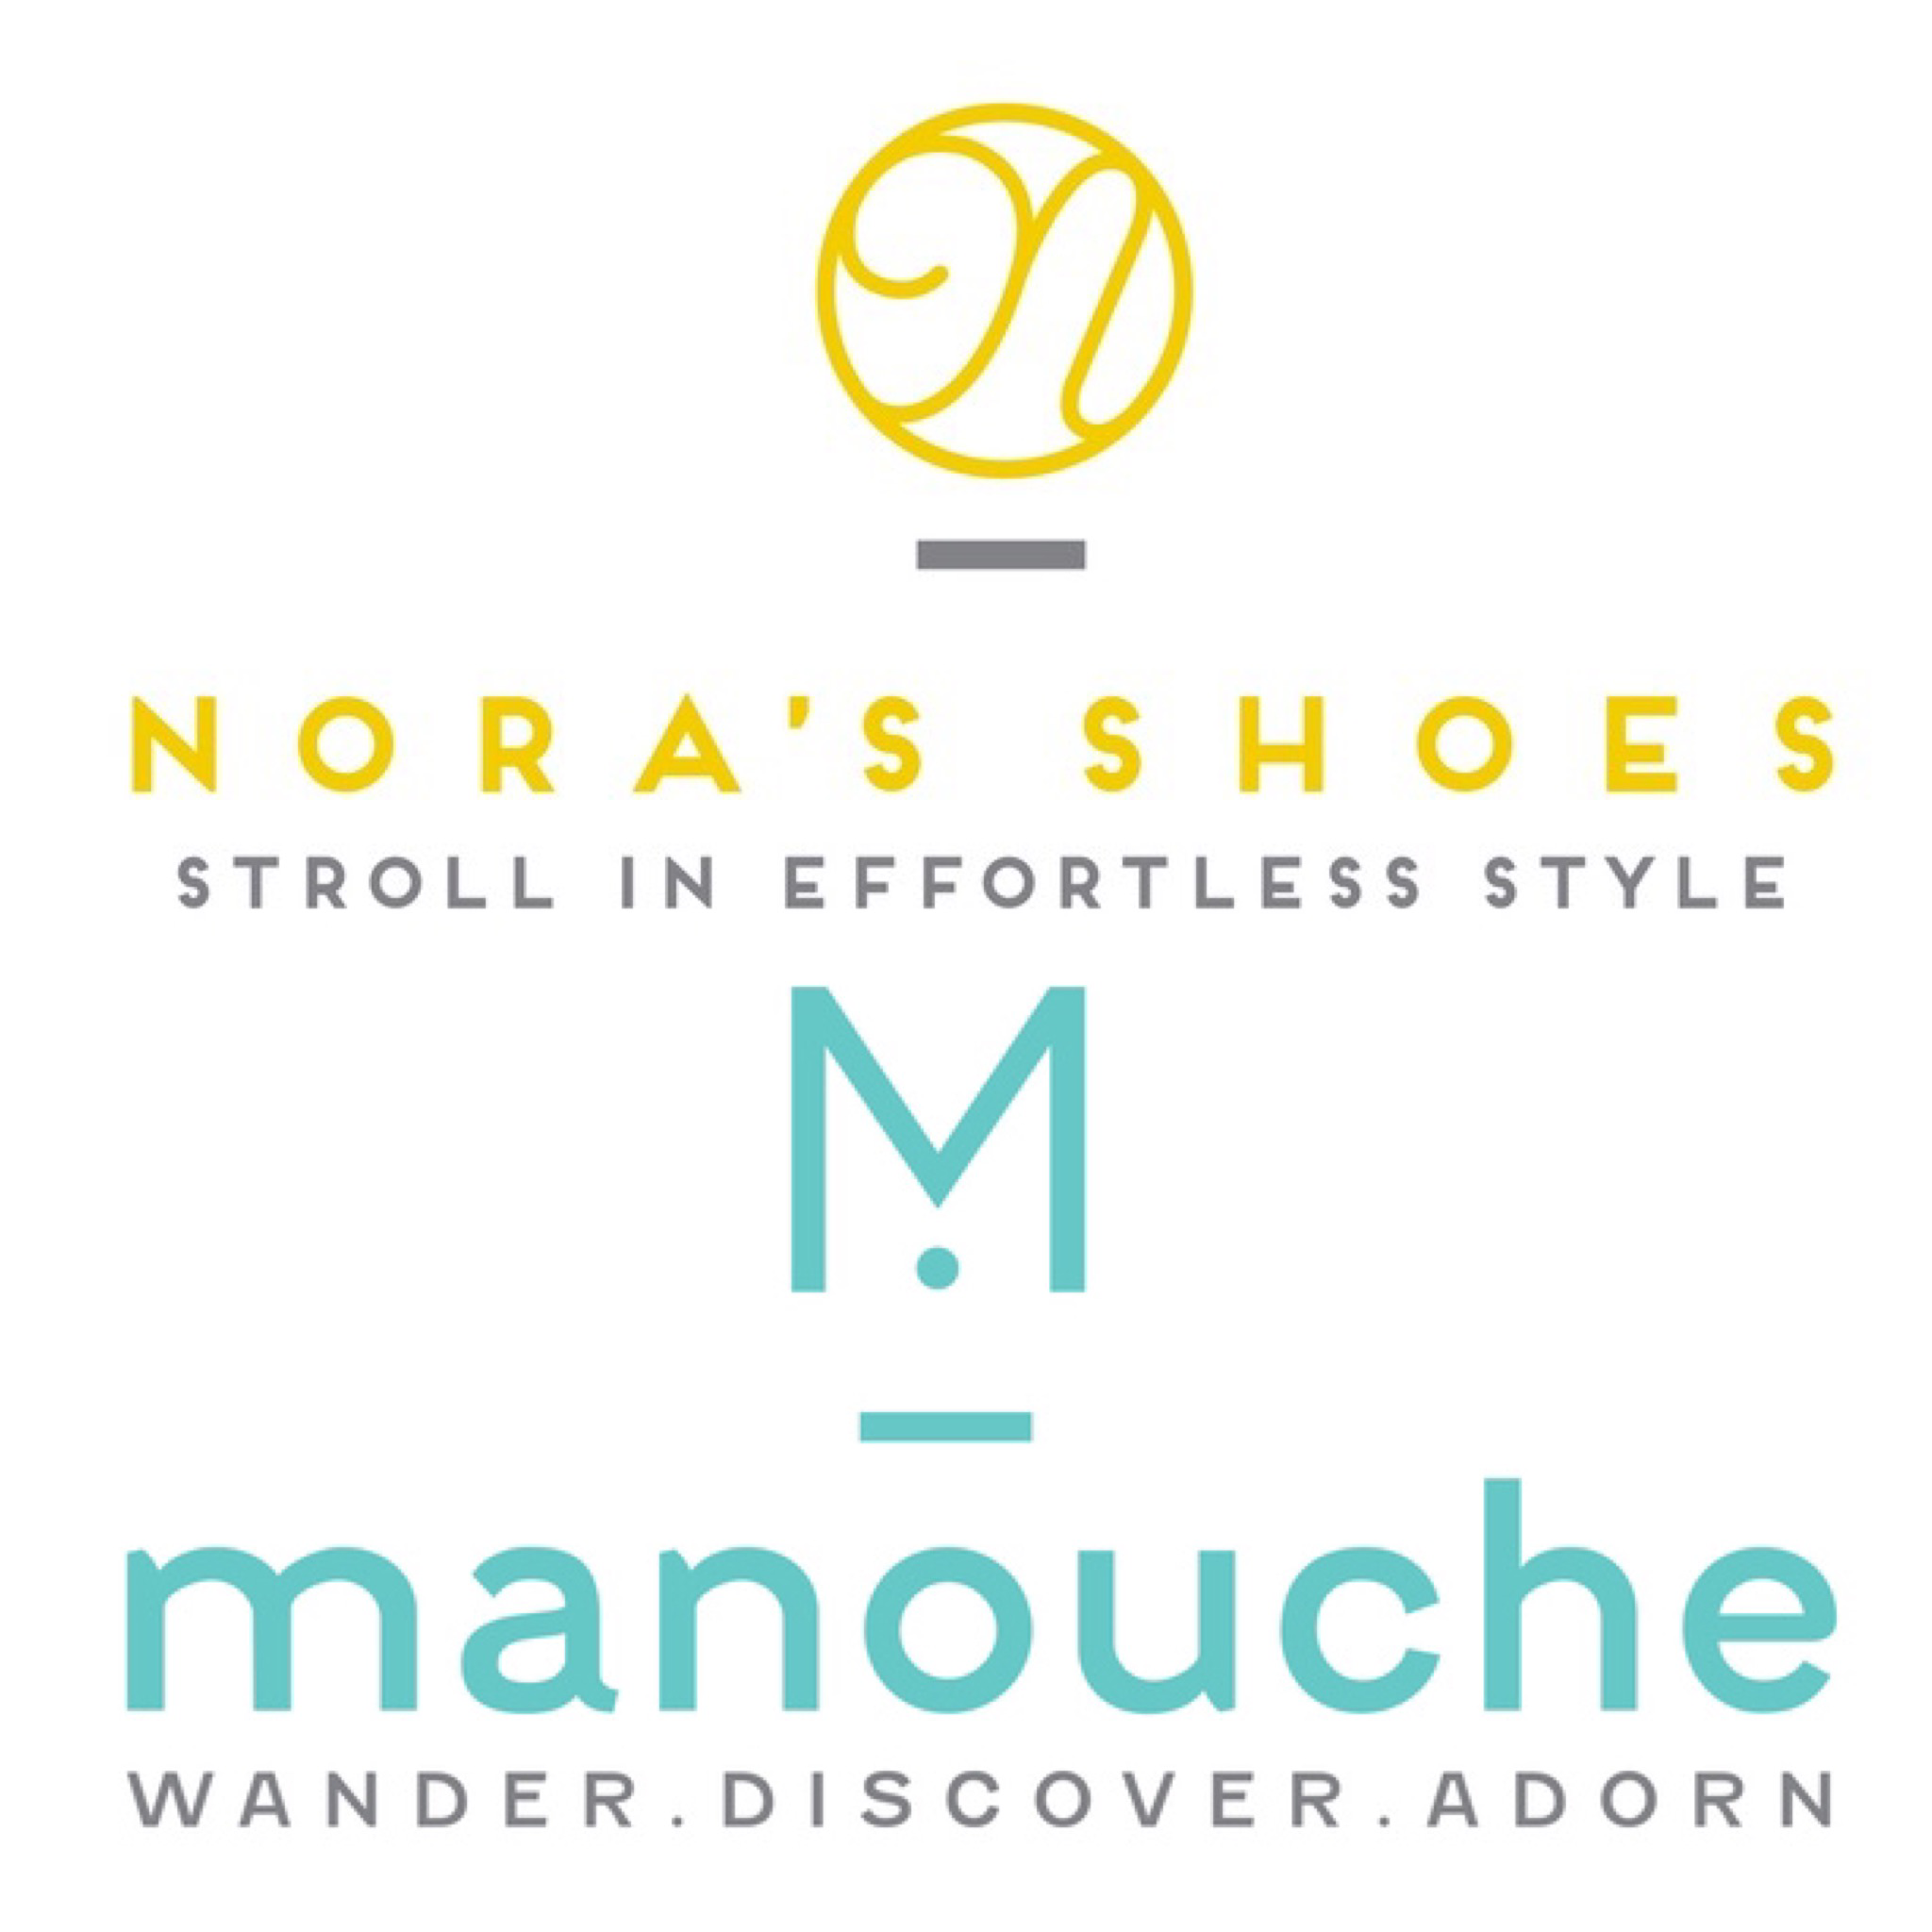 Noras Shoes and Manouche in Illinois